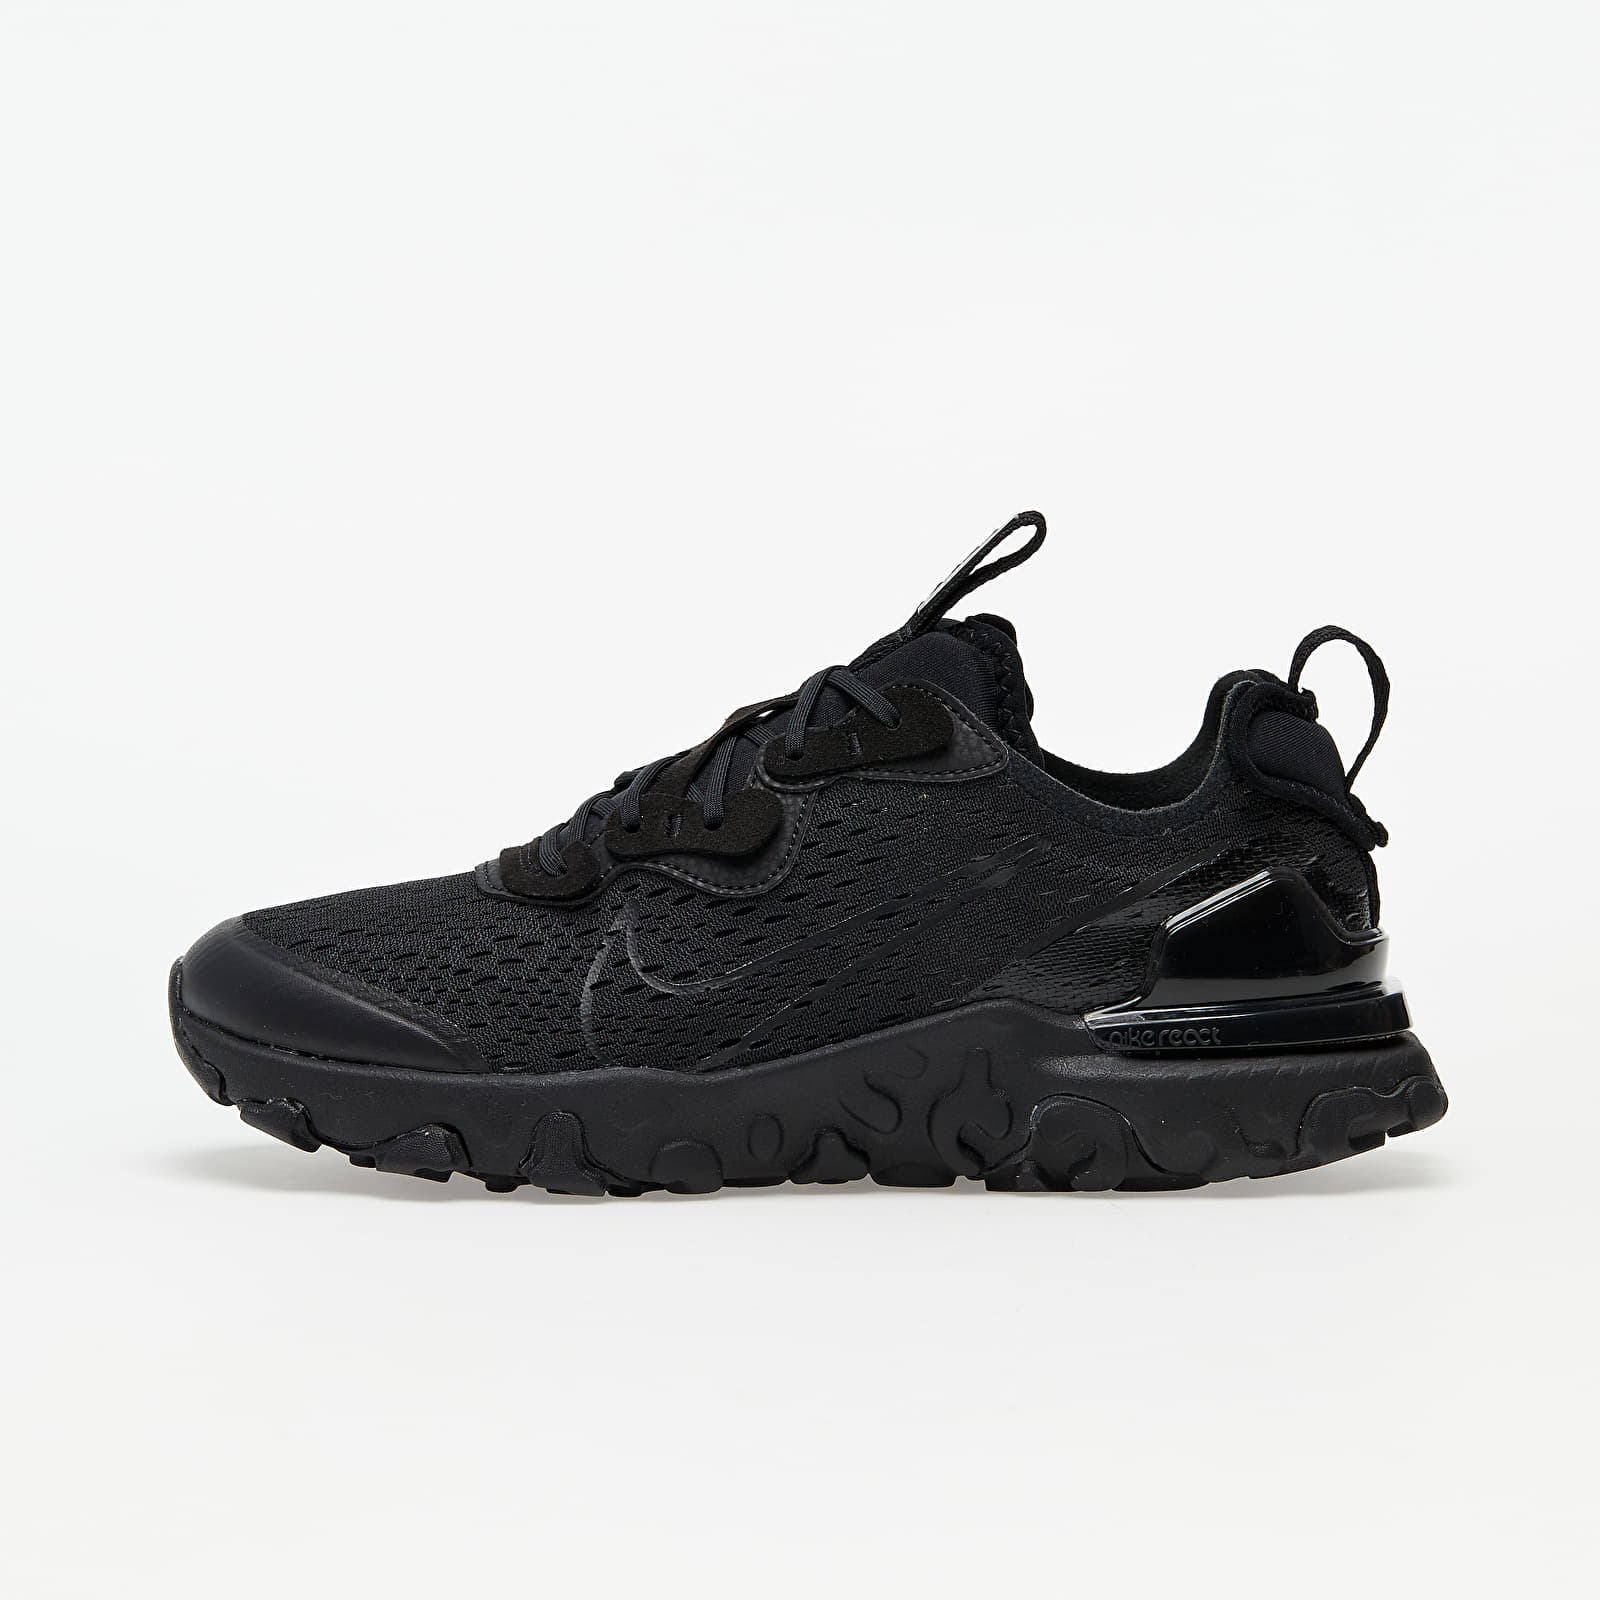 Chaussures et baskets enfants Nike React Vision (GS) Black/ Black-Smoke Grey